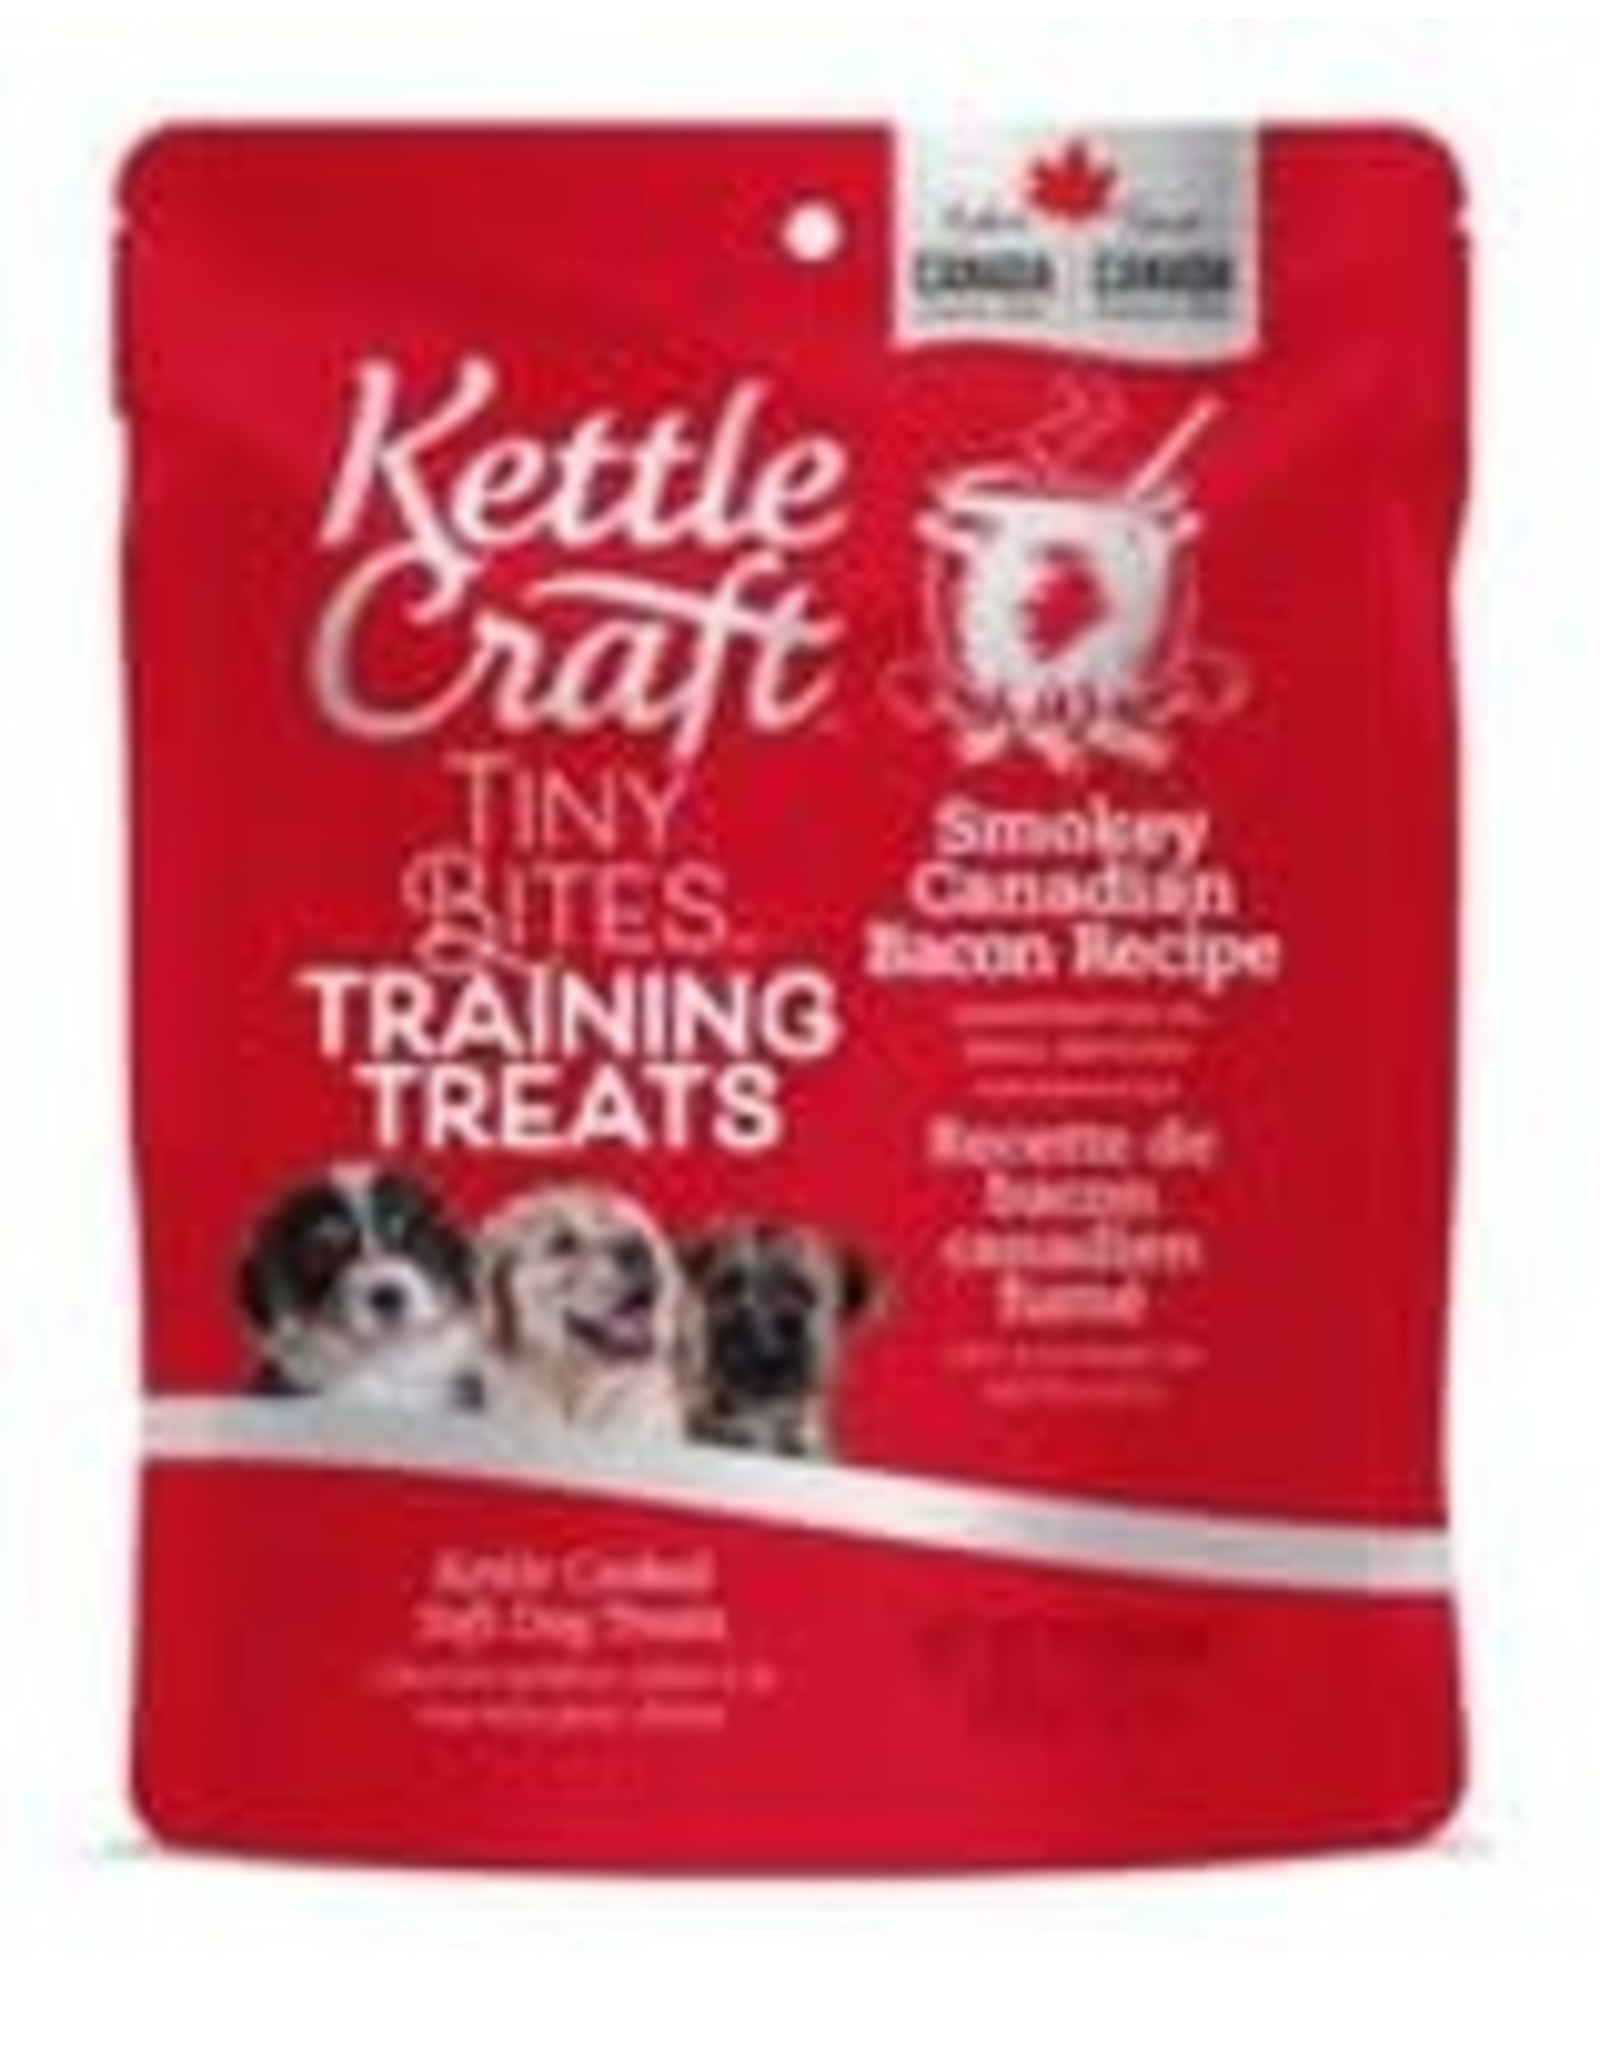 Kettle Craft K.C. Dog - Tiny Bites Training Treats 340g